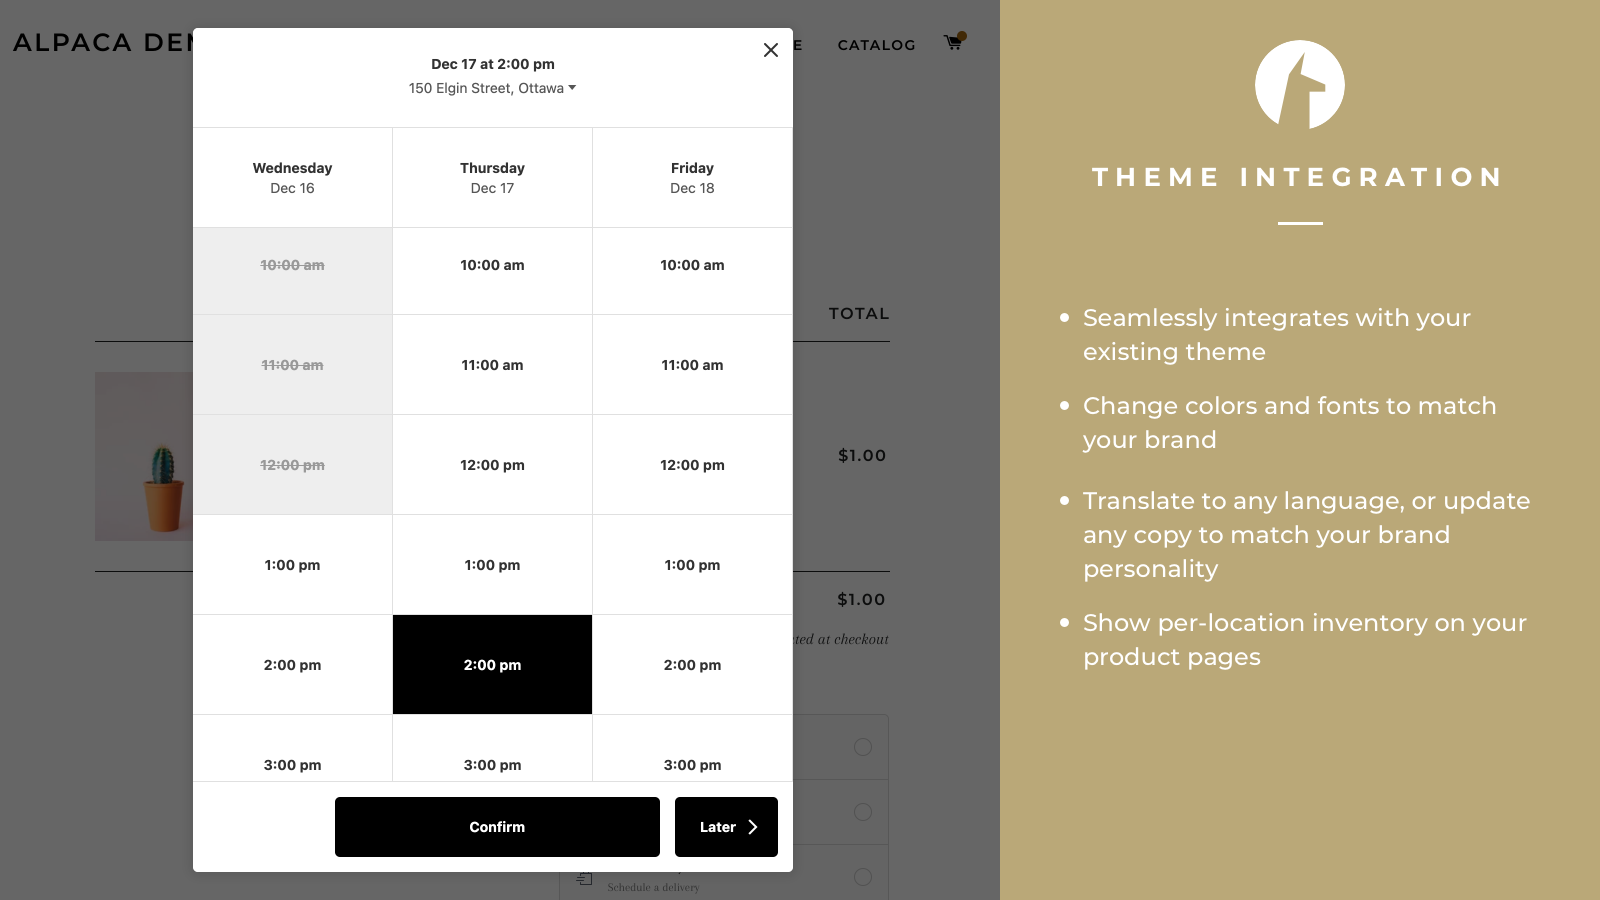 Allow customers to schedule a pickup time from your storefront